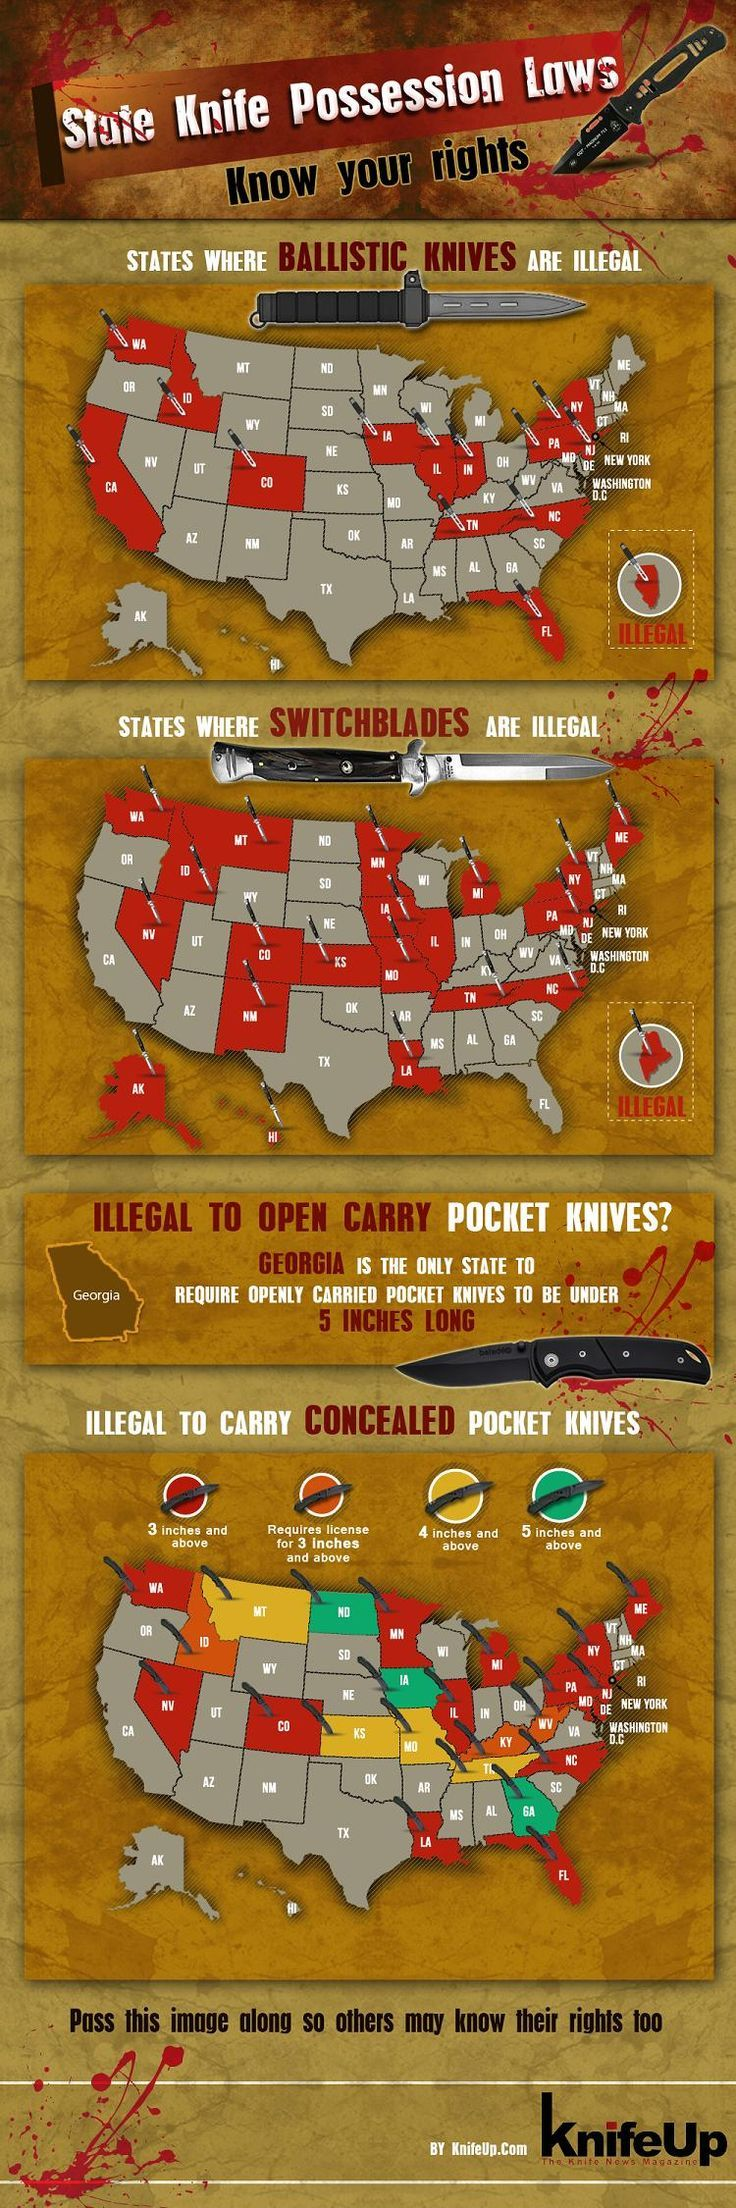 knife-laws-infographic.jpg (736×2208)